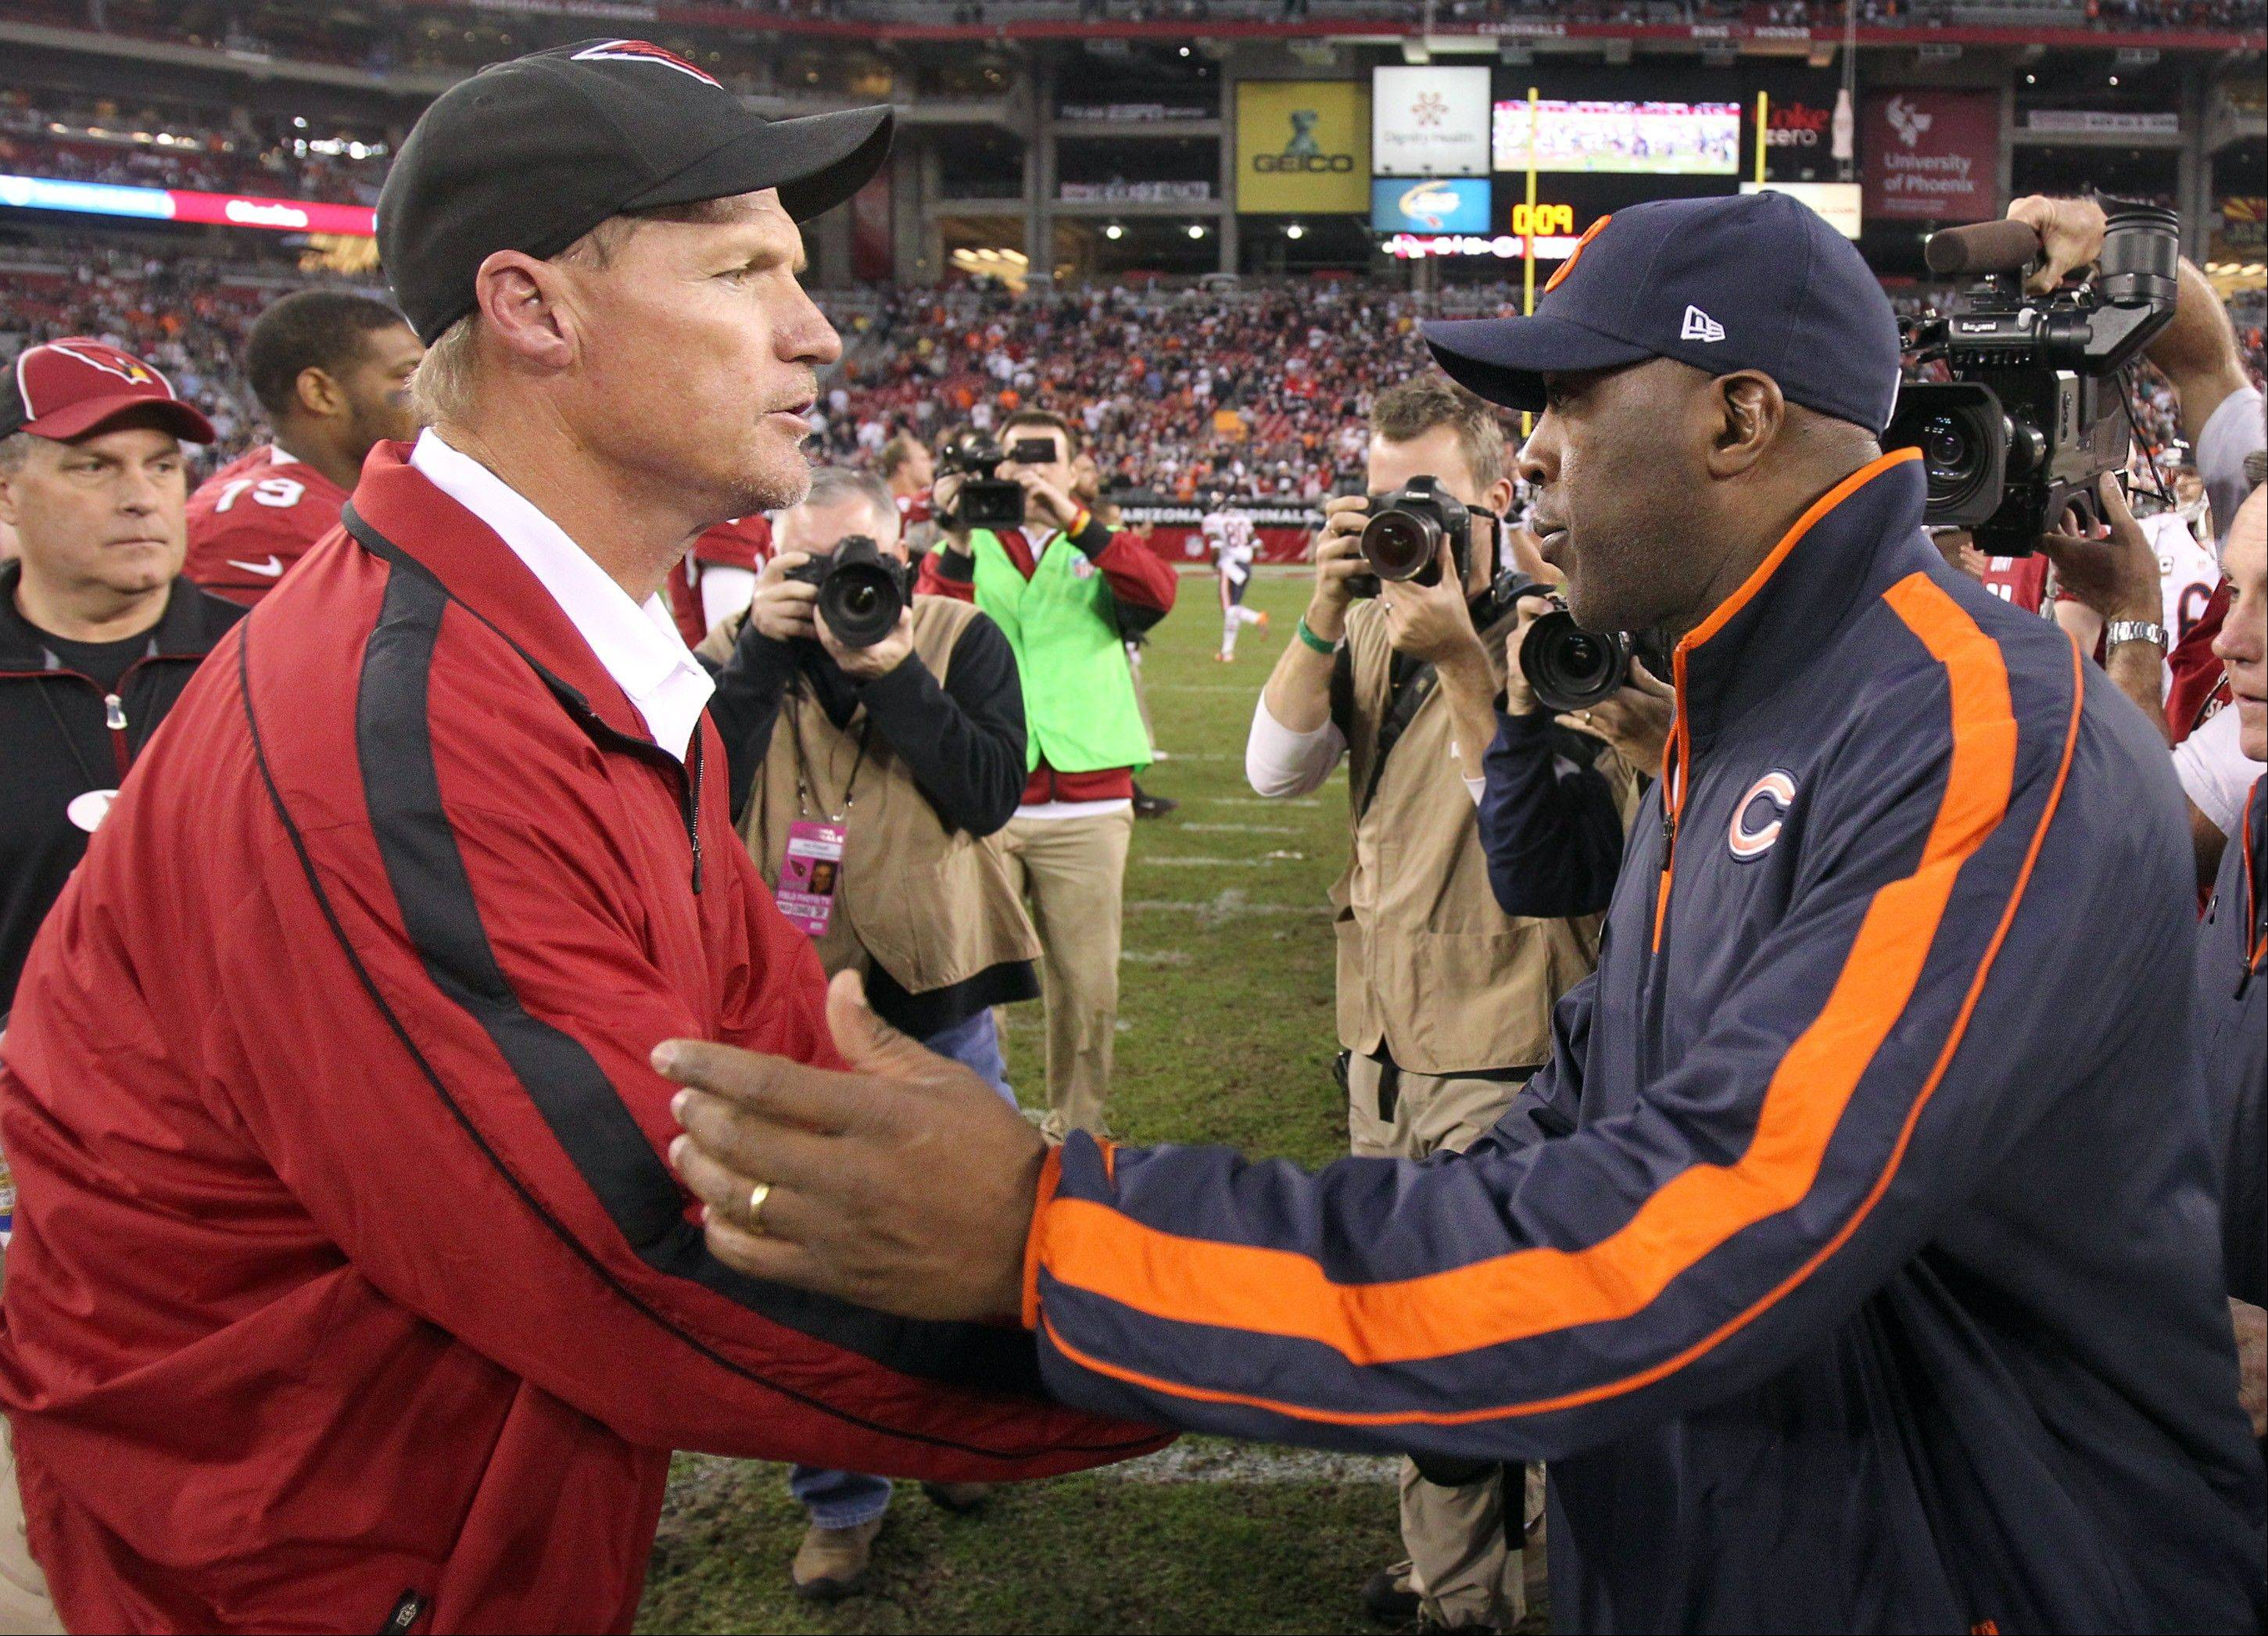 Arizona Cardinals coach Ken Whisenhunt, left, shakes hands with Chicago Bears coach Lovie Smith, right, following an NFL football game. The Bears won 28-13.